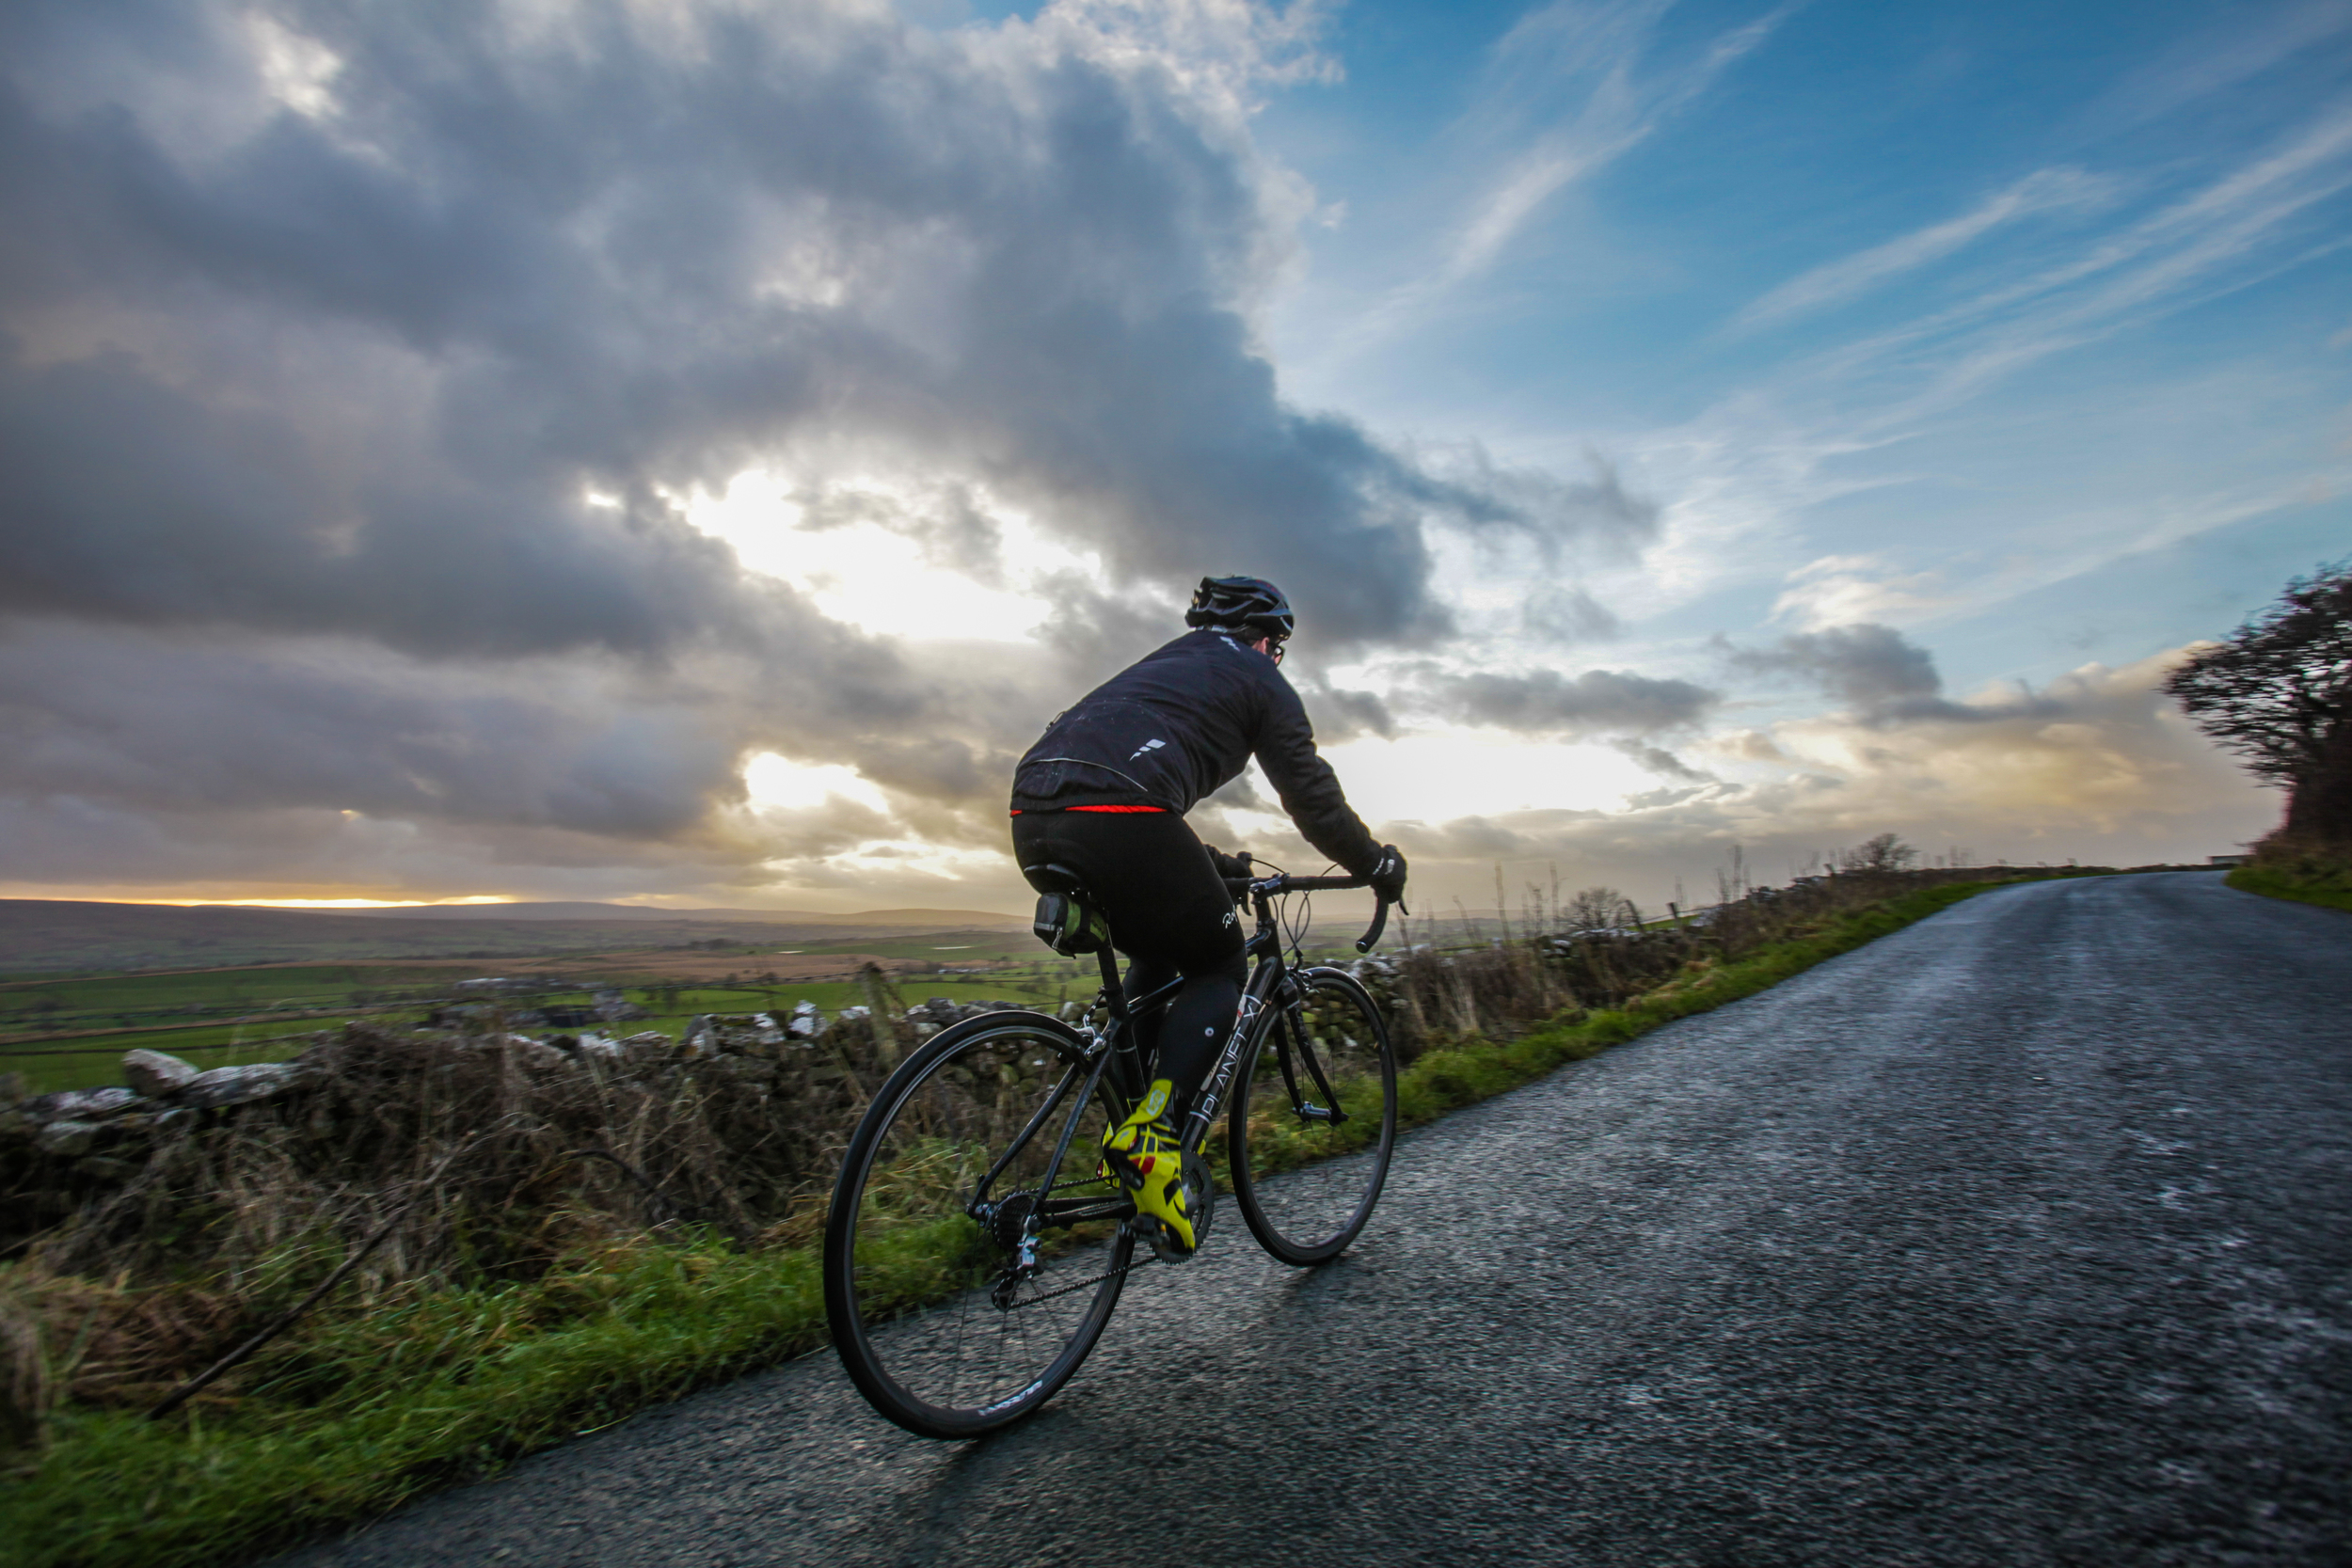 Great British MINI Adventure Day 8 - Magnificent Views in the Yorkshire Dales